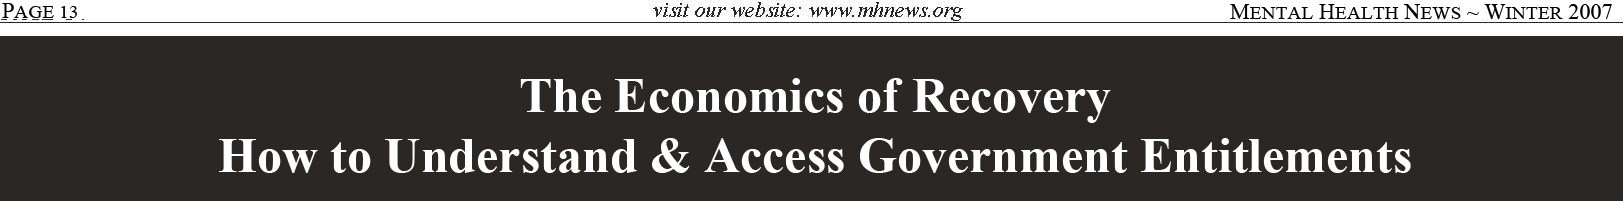 Winter 2007 The Economics of Recovery How to Understand & Access Government Entitlements